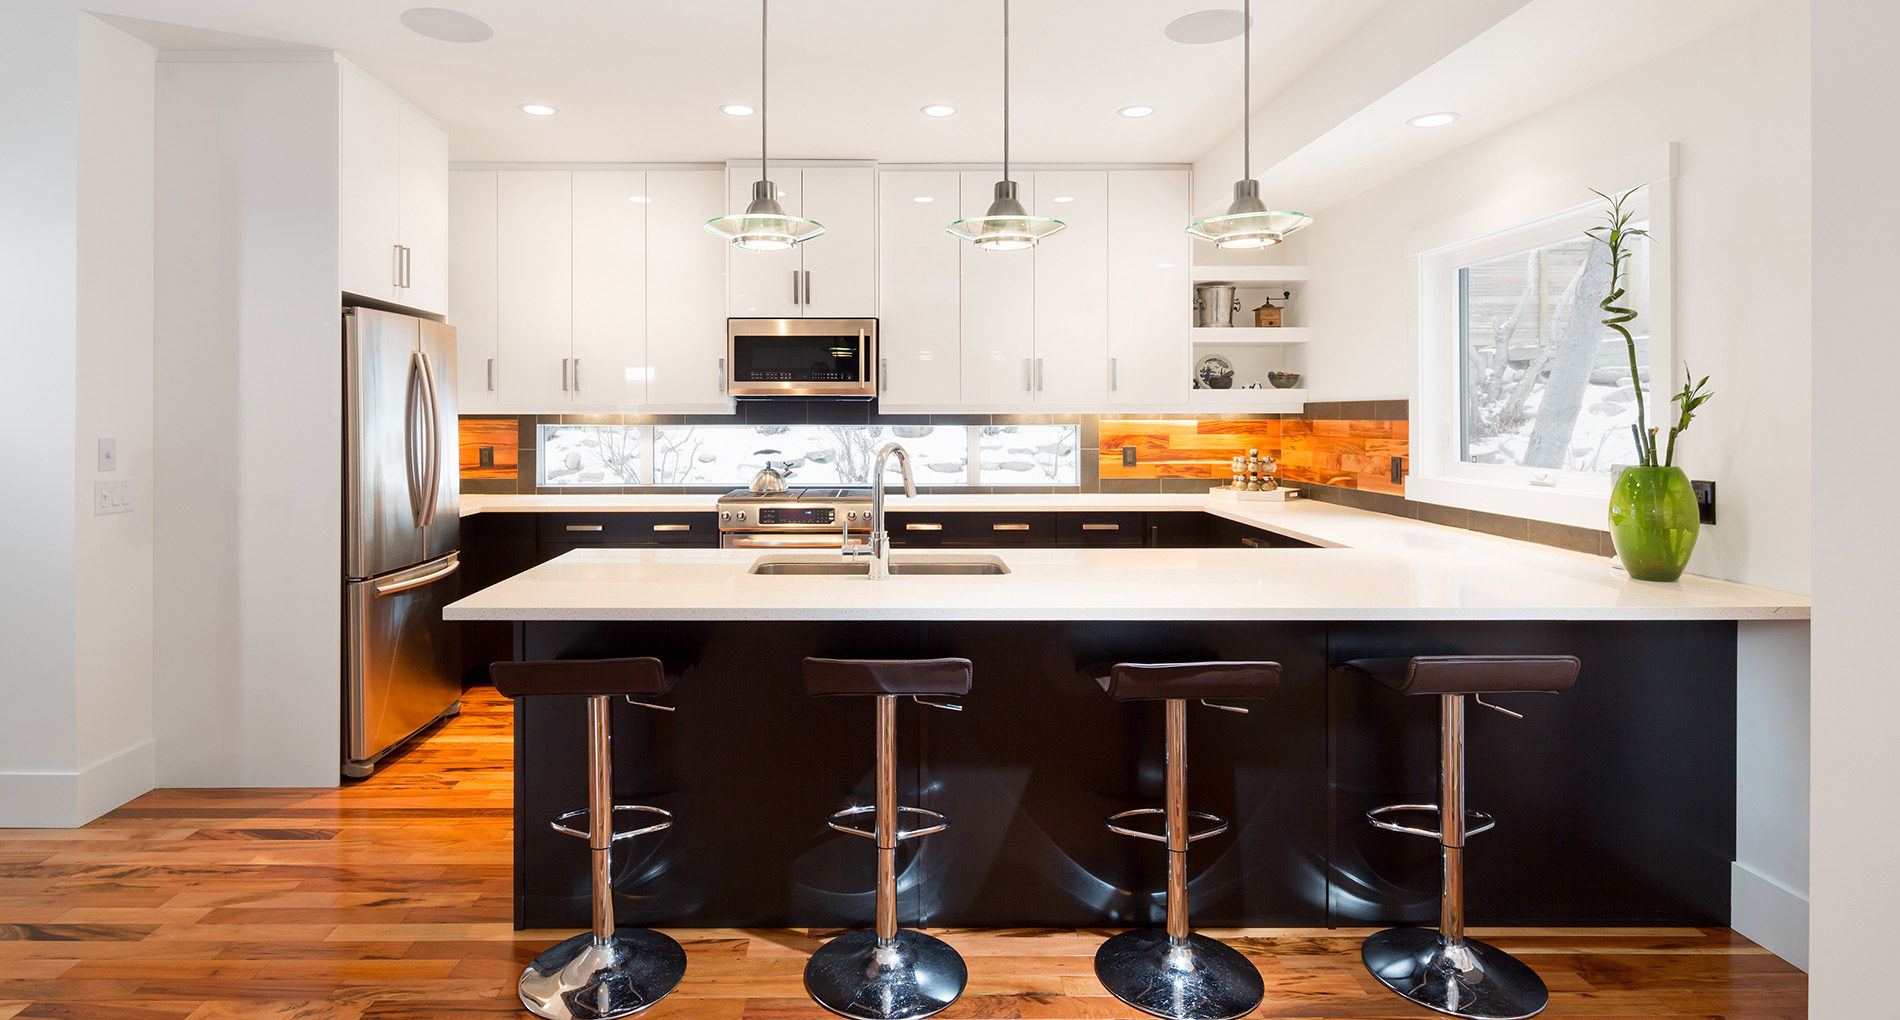 Questions To Ask Prior To Hiring A Kitchen Renovator